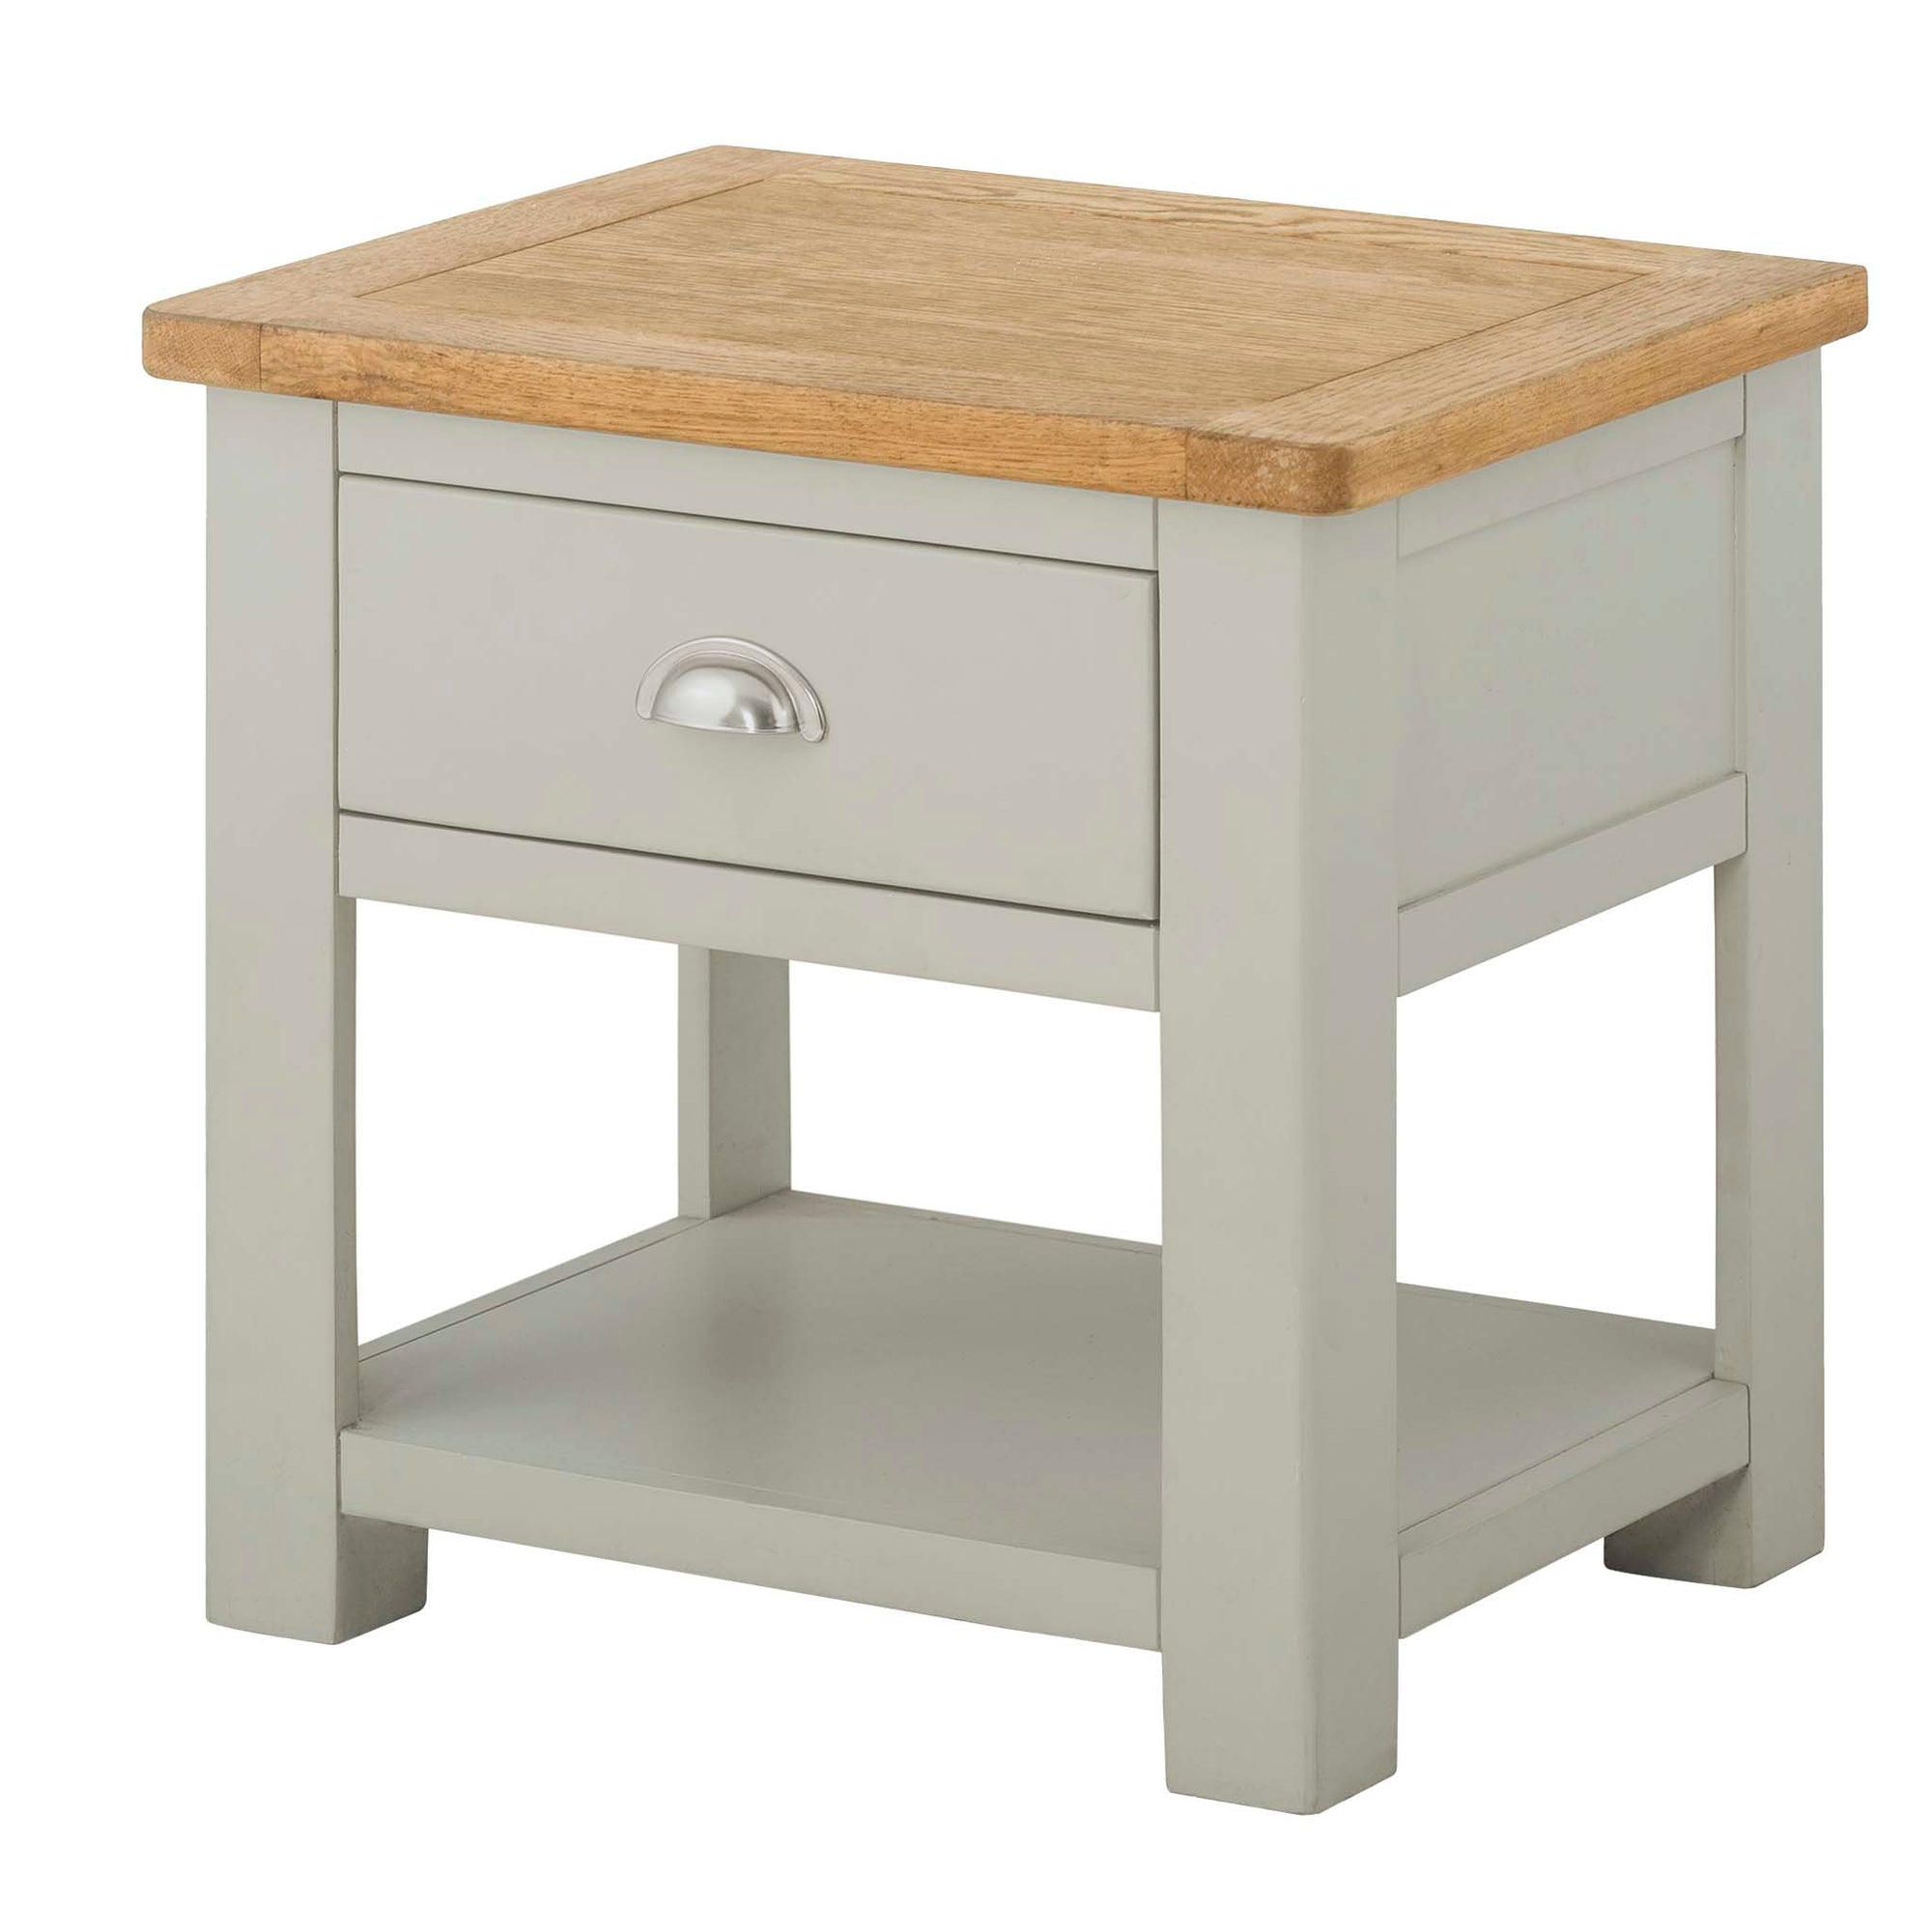 The Padstow Grey Wooden Lamp Table with Drawer by Roseland Furniture